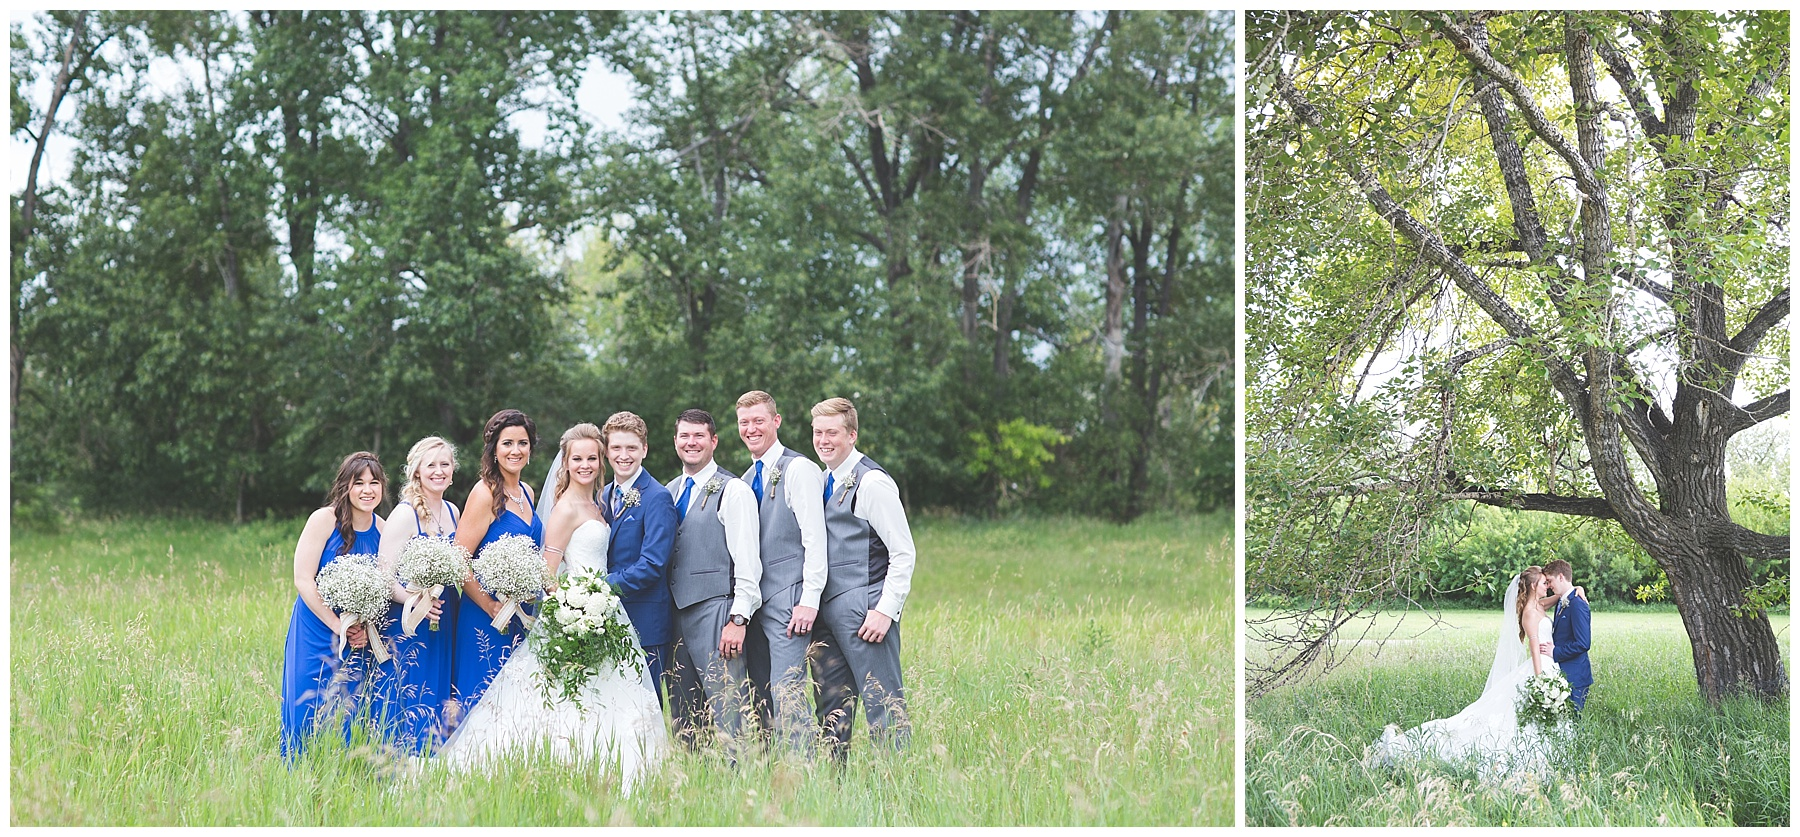 Wedding Photography in Carburn Park, Calgary